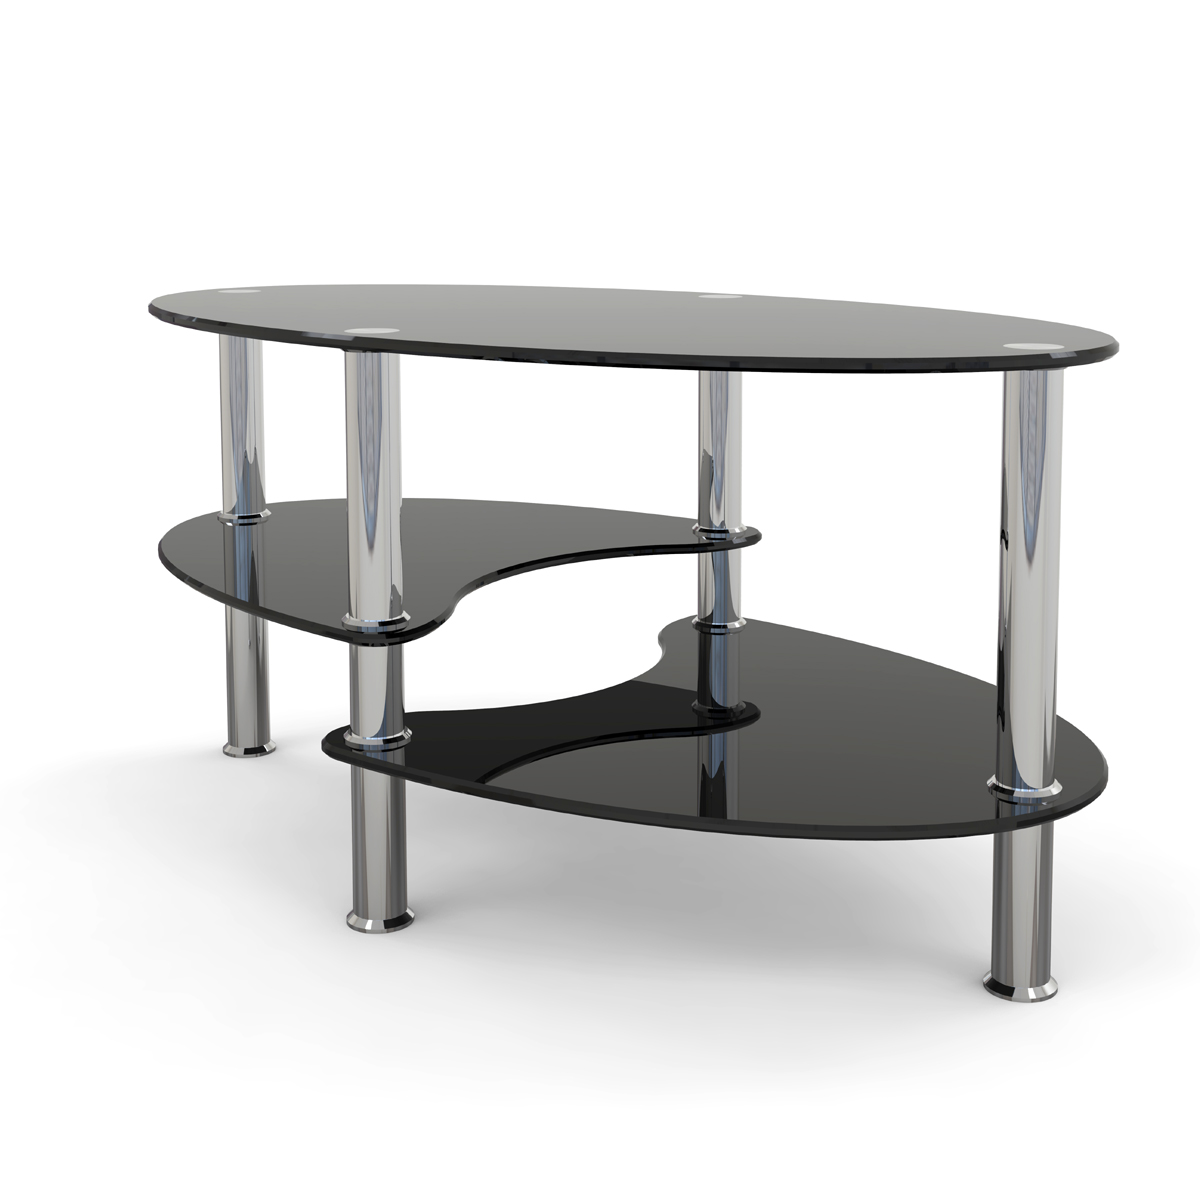 Elm 38 Inch Oval Two Tier Black Glass Coffee Table